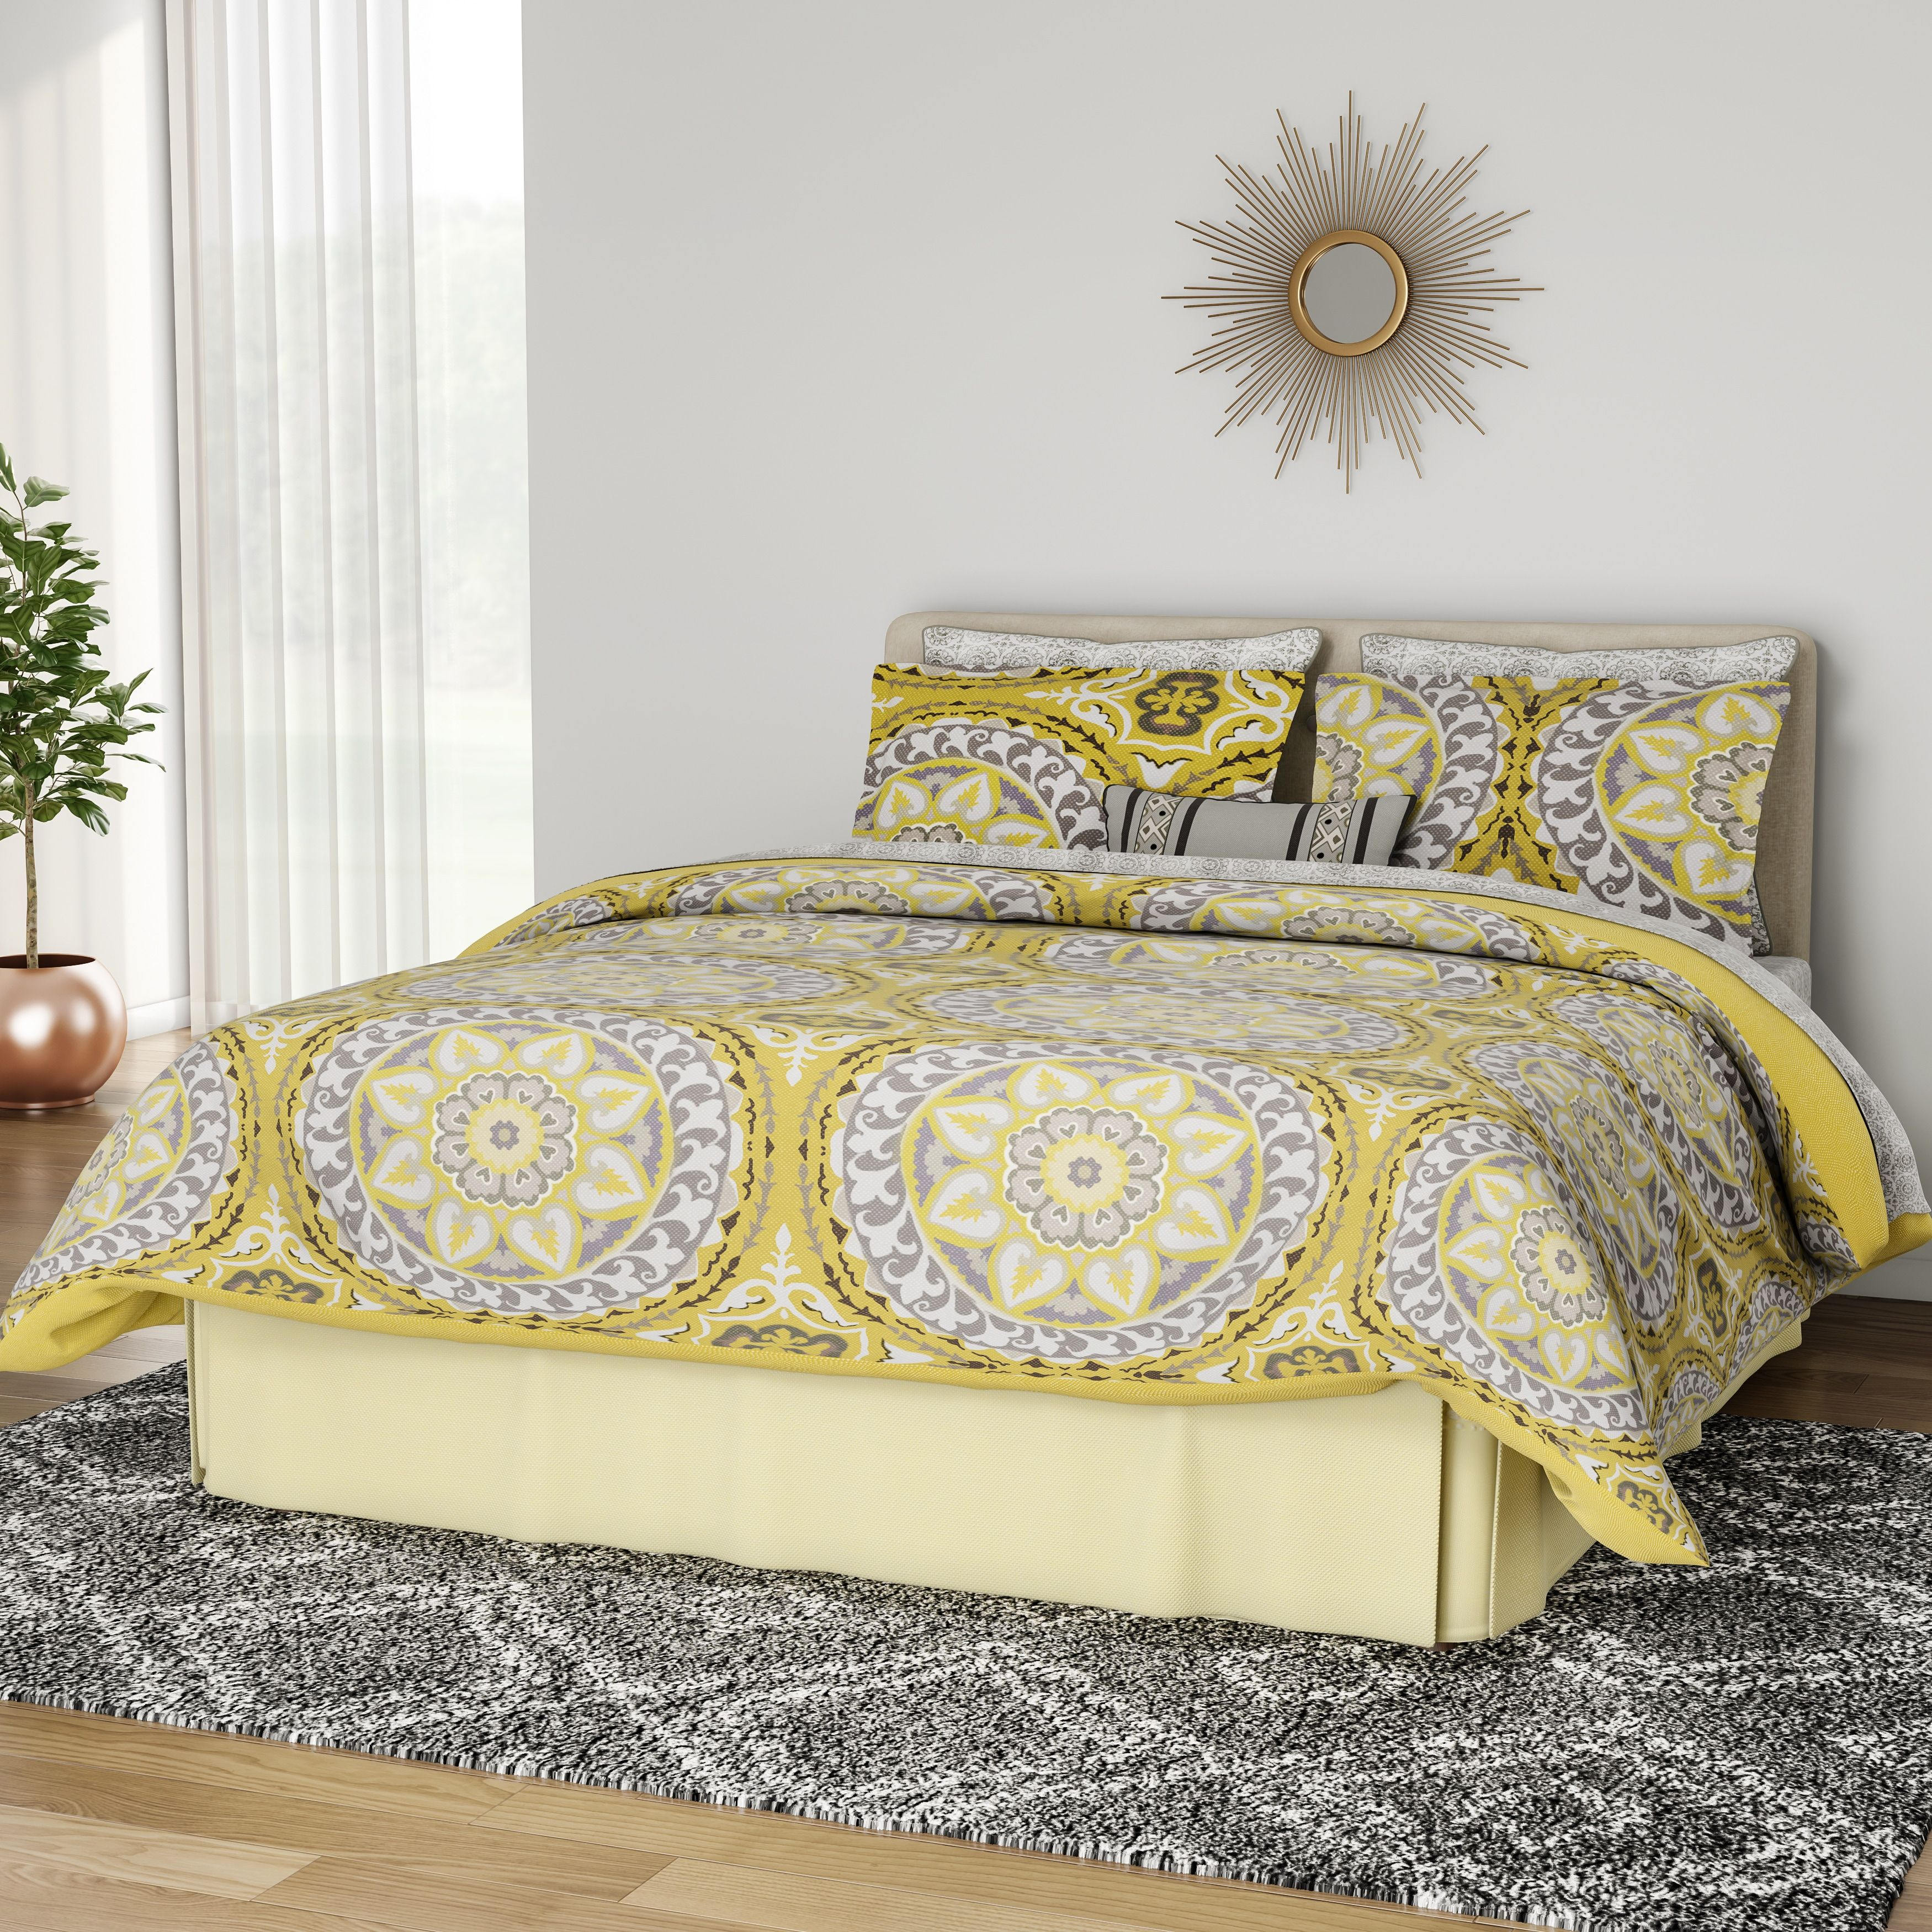 Cancun Palm 4 Piece Bedroom Set Wicker Rattan Queen King: Palm Canyon Antigua Savanah Yellow Complete Comforter And